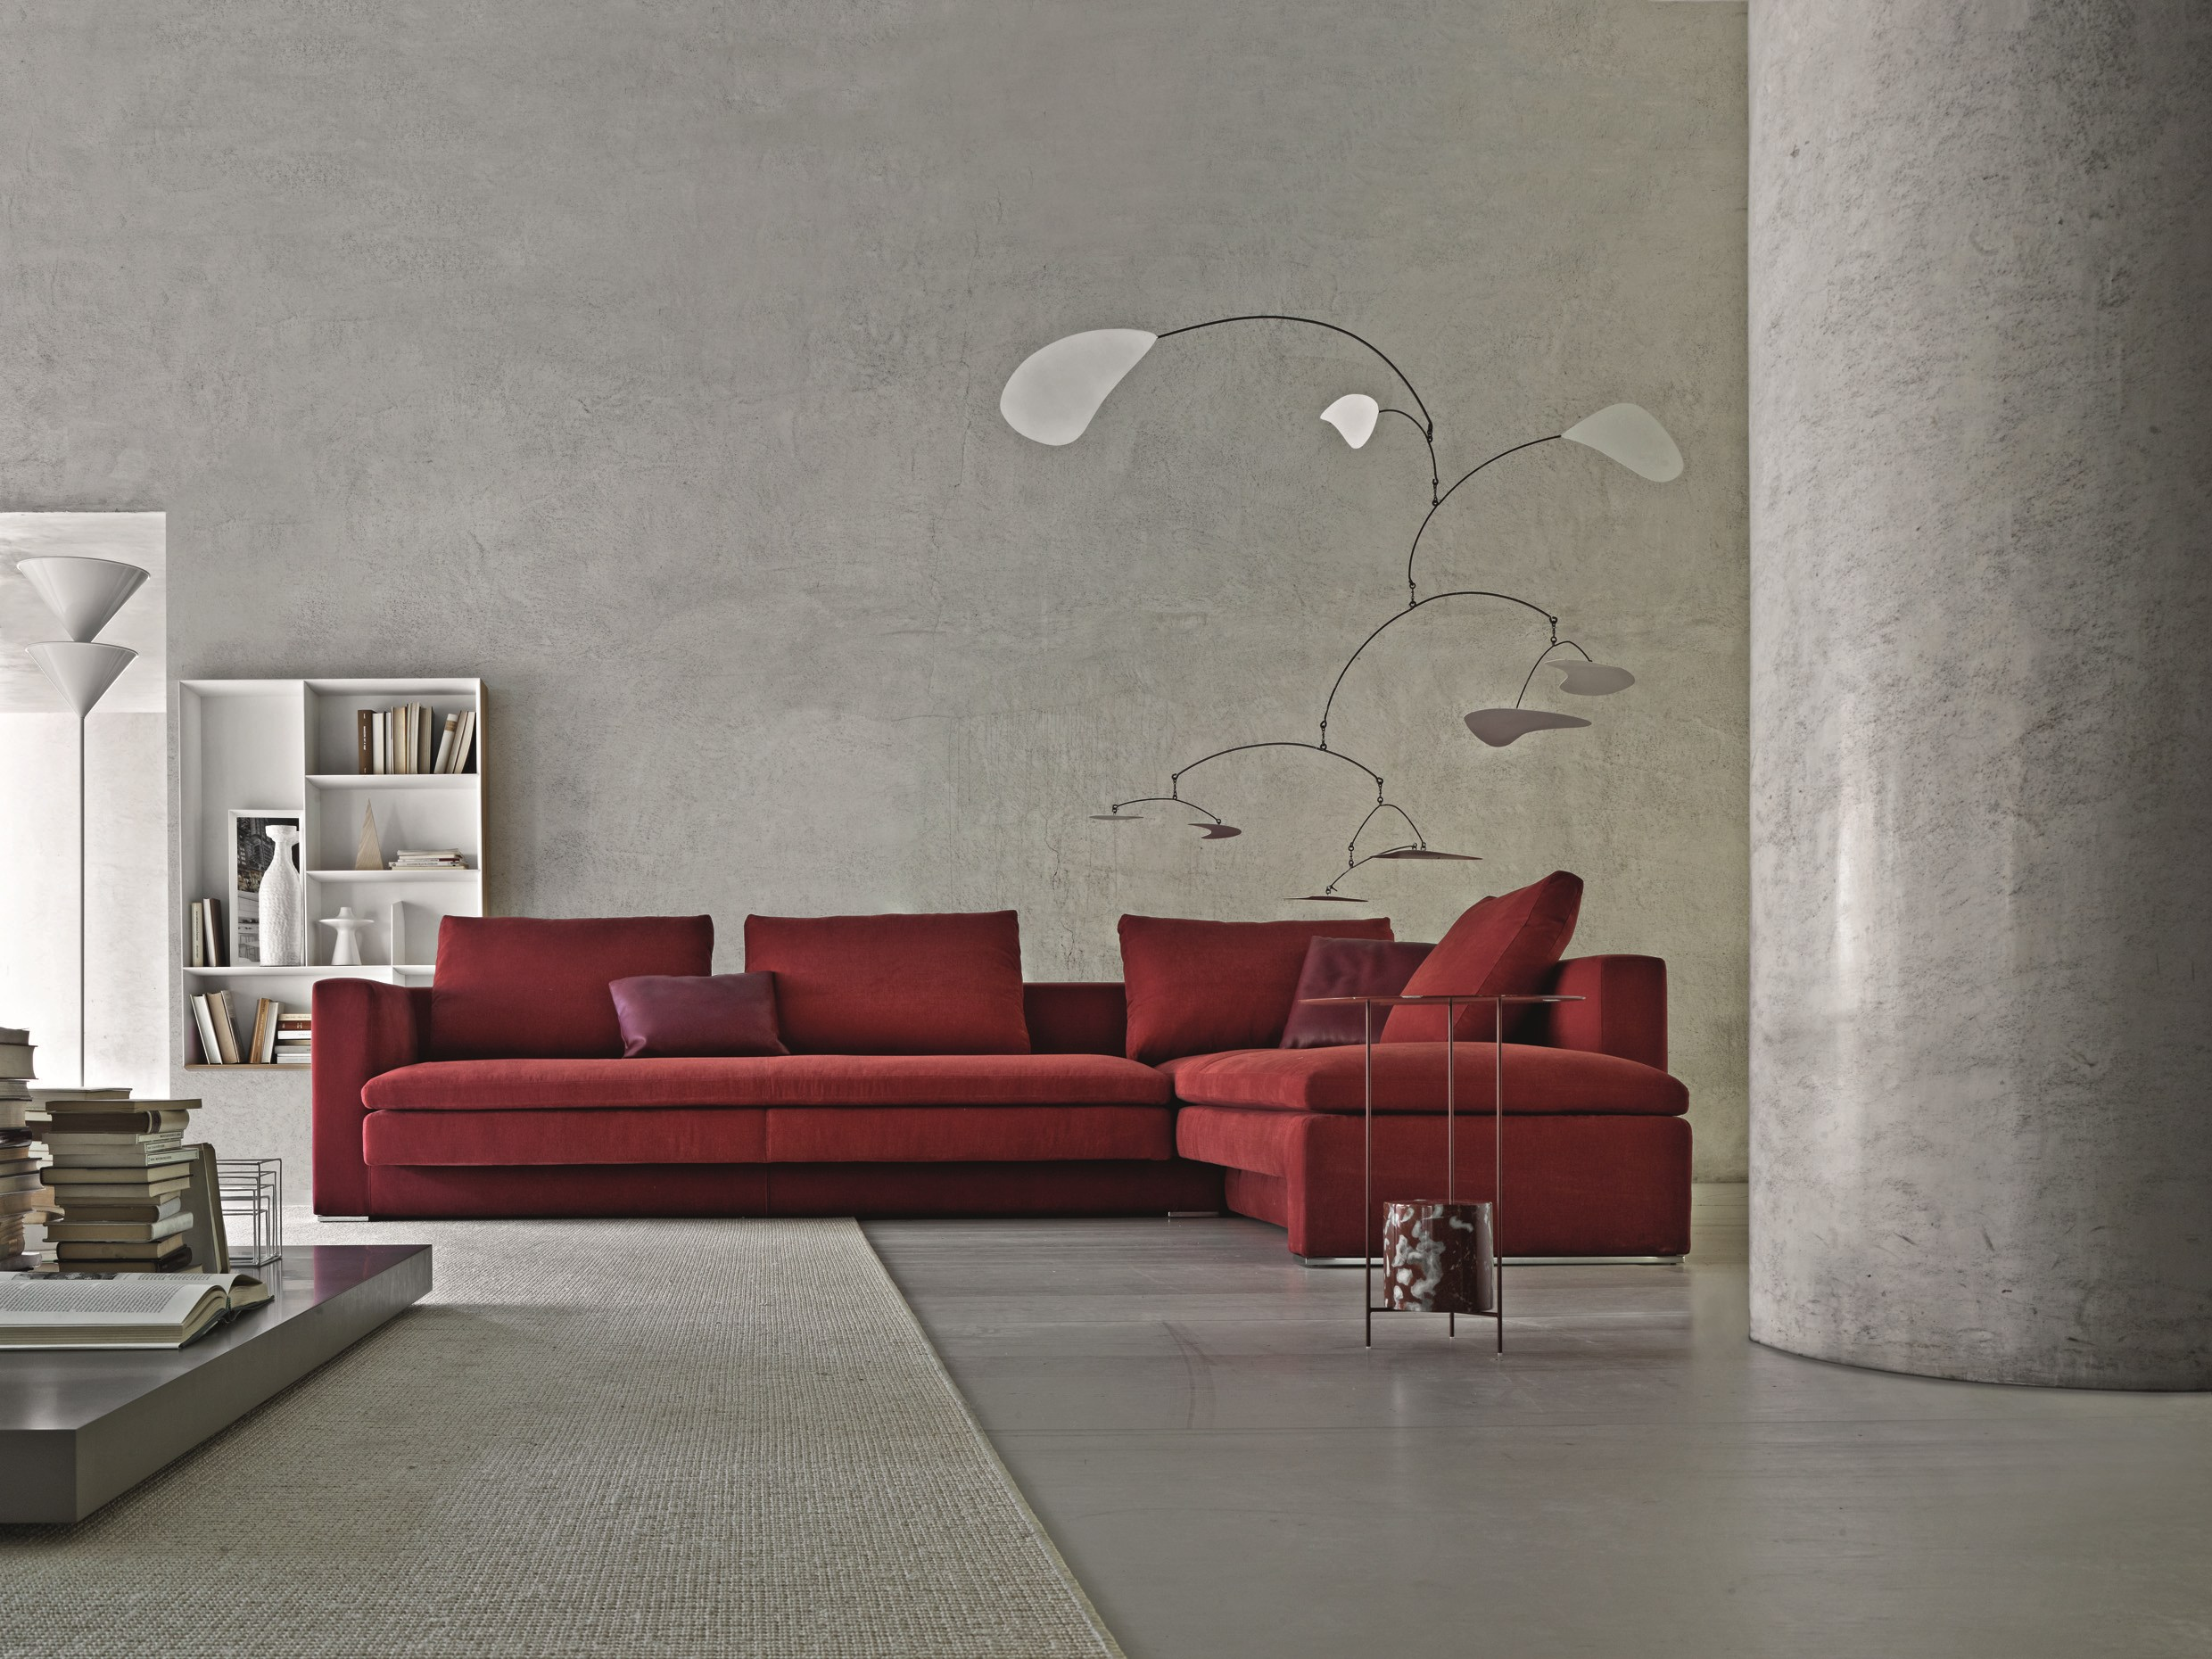 Sectional sofa hi bridge by molteni c design ferruccio - Idees deco peinture ...